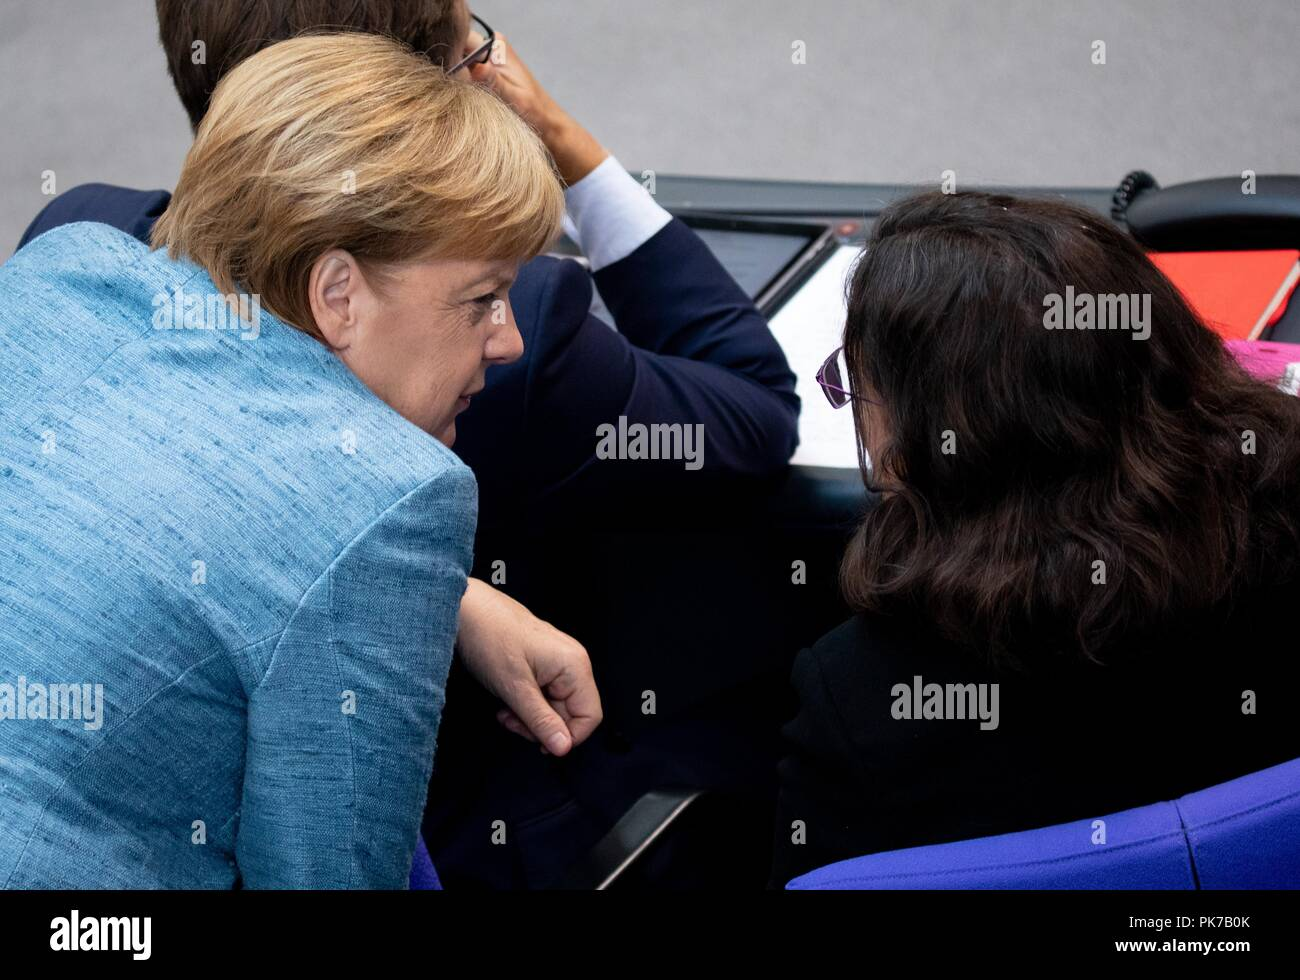 Berlin, Germany. 11 September 2018, Berlin: Chancellor Angela Merkel (CDU) will speak to Andrea Nahles (r), SPD faction leader and SPD party leader, at the plenary session in the German Bundestag. The main topic of the 47th session of the 19th legislative period is the Federal Government's draft budget 2019 and the federal budget 2018 to 2022. Photo: Bernd von Jutrczenka/dpa Credit: dpa picture alliance/Alamy Live News - Stock Image